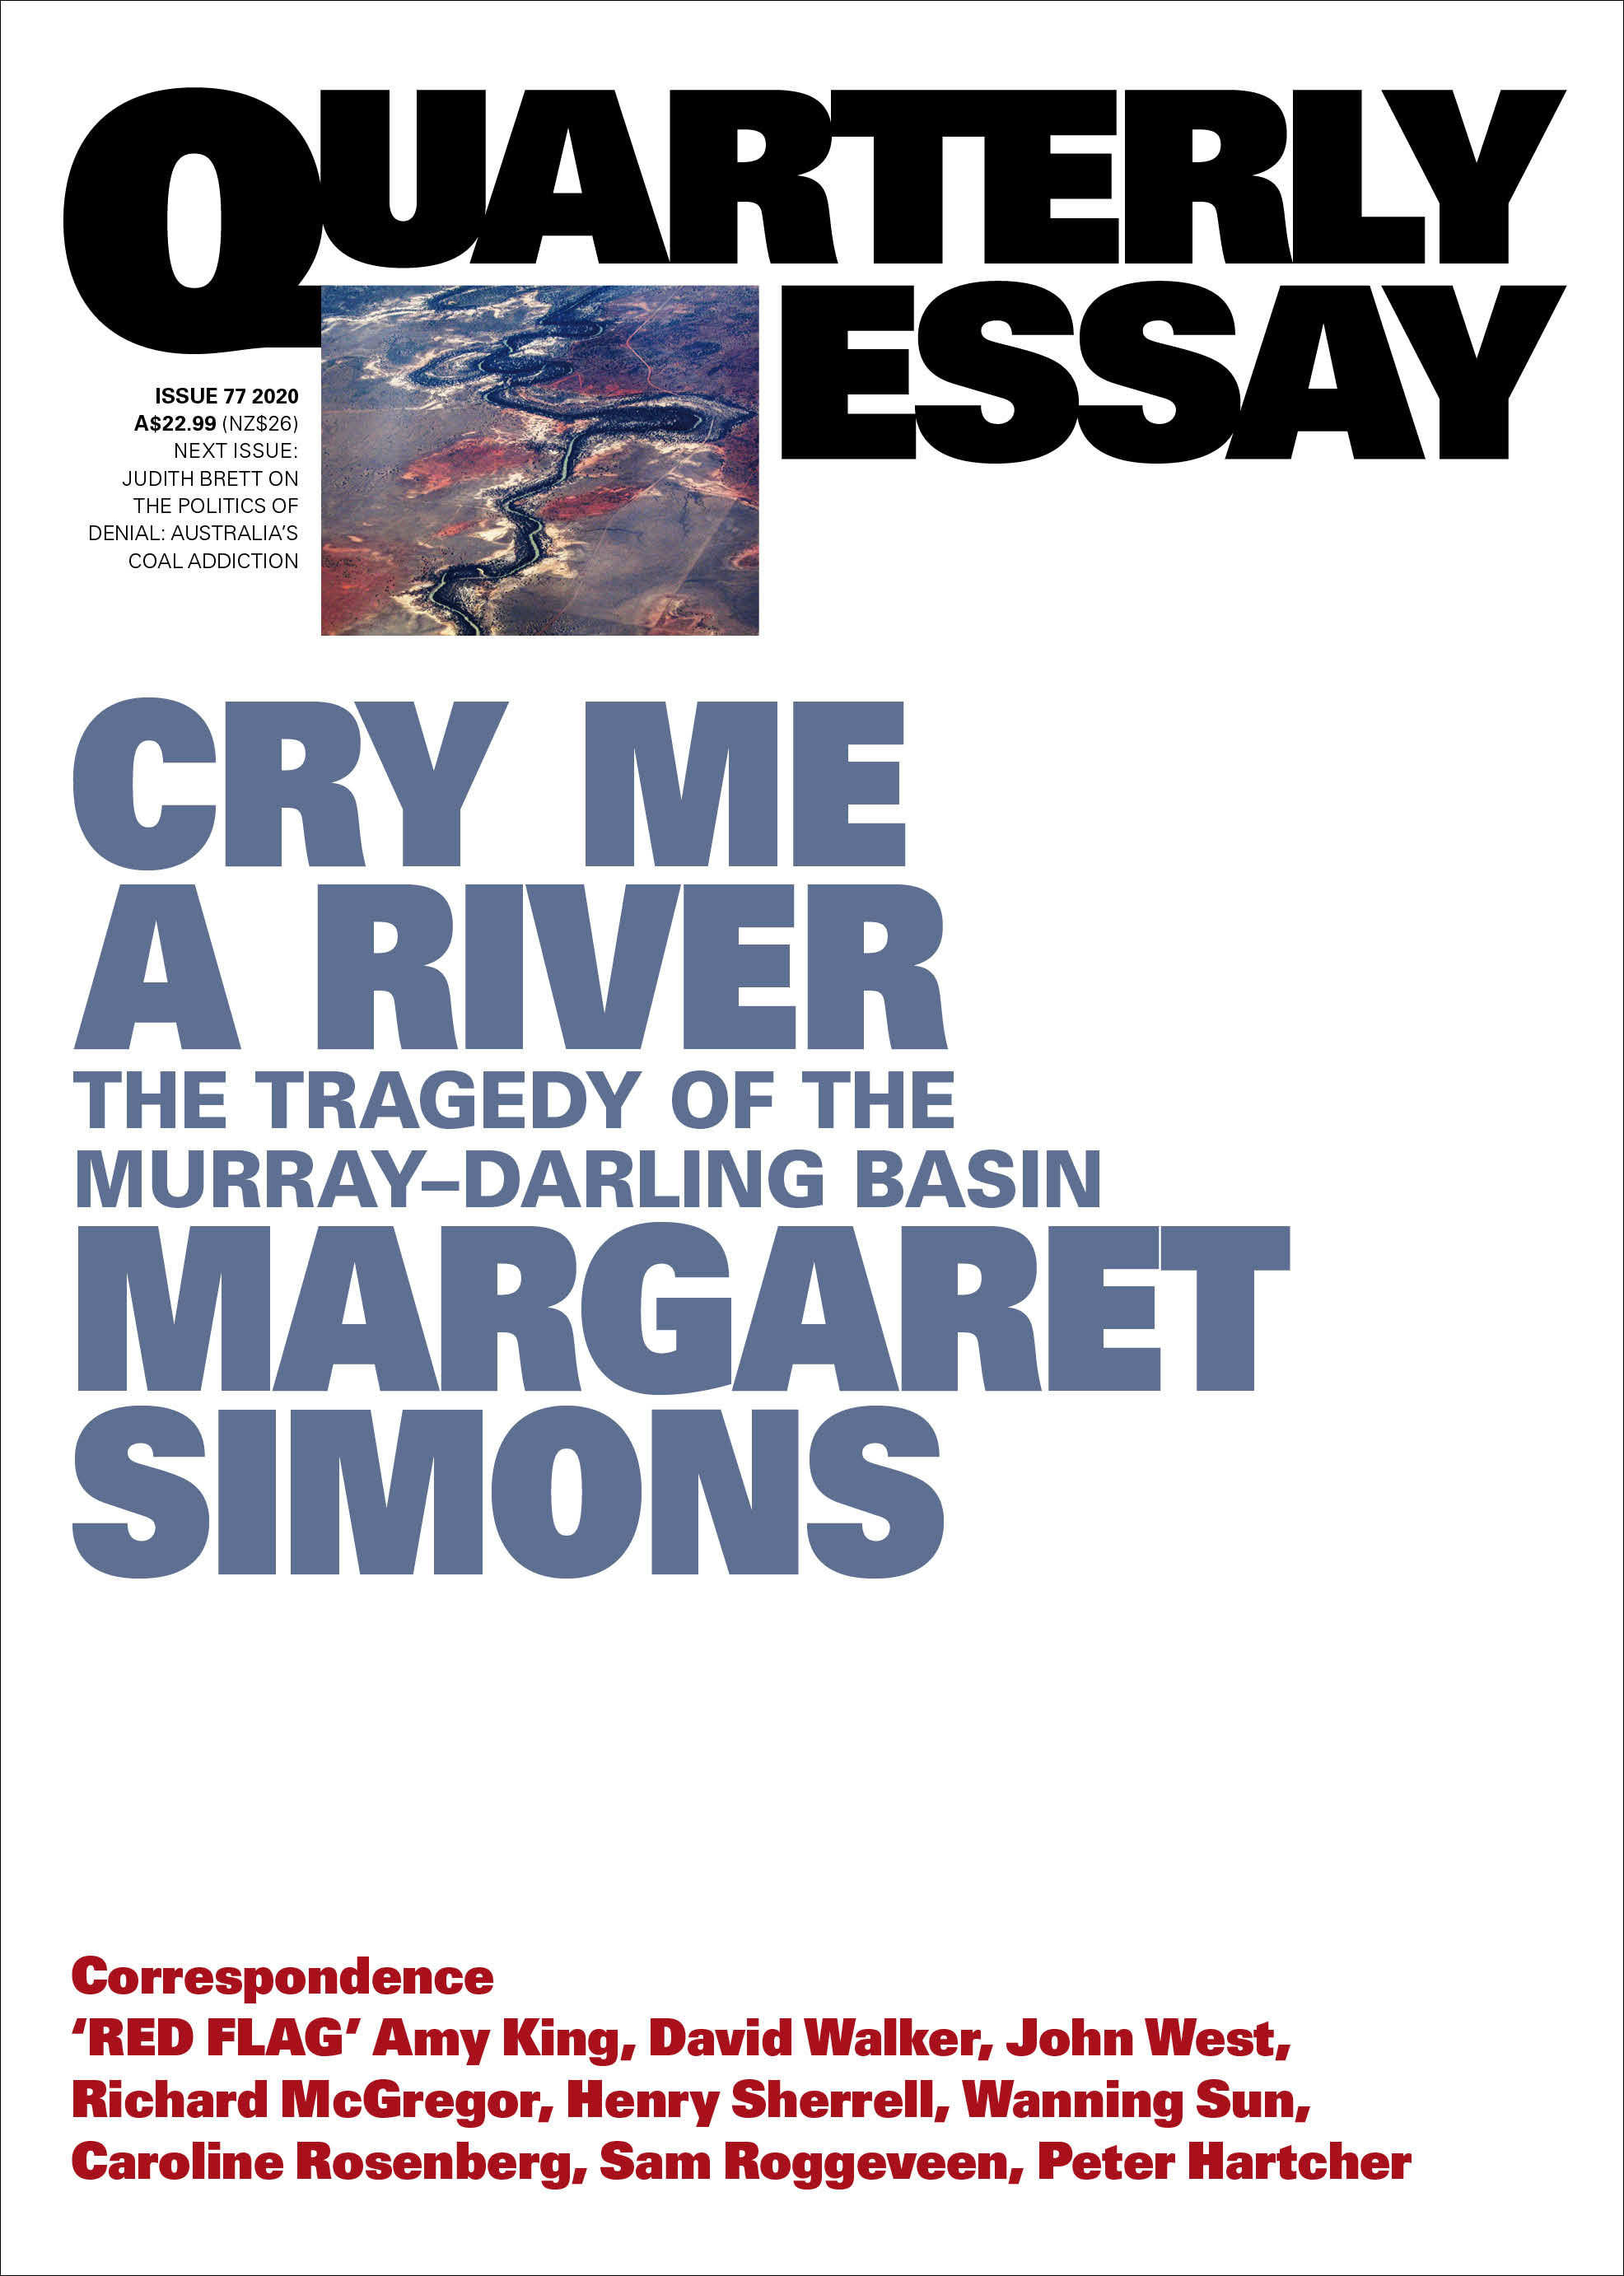 Cry Me A River: The Tragedy of the Murray-Darling Basin